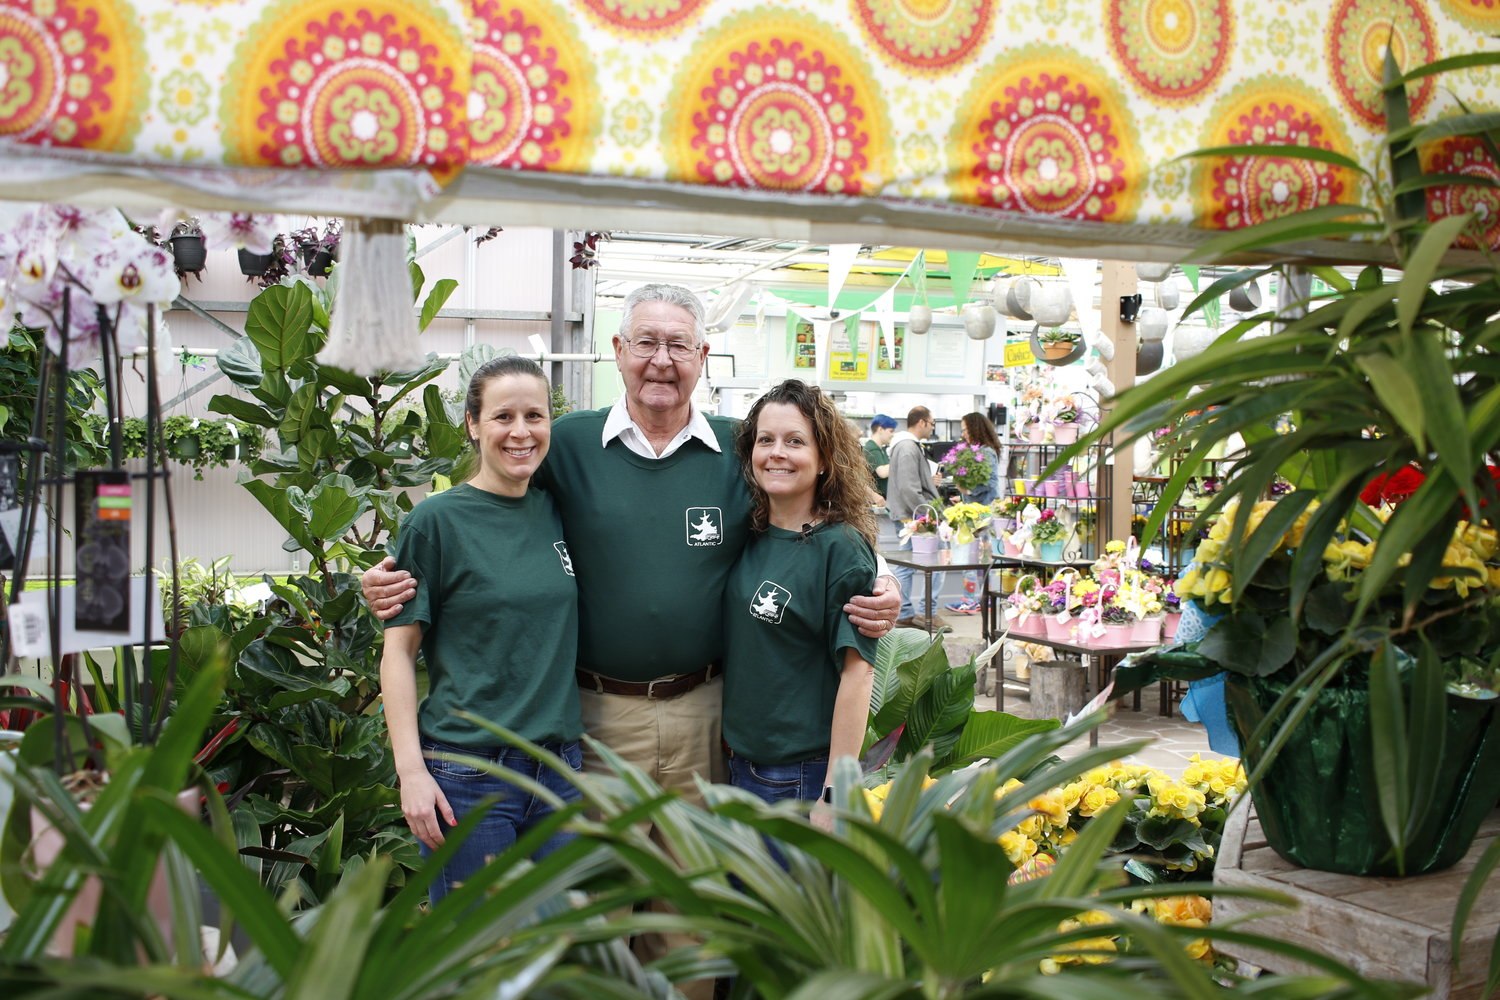 Atlantic nursery first opened in 1929. Ninety years later, Leeanne Kraus, left, Sig Feile and Christina Feile, right, run the family business together.